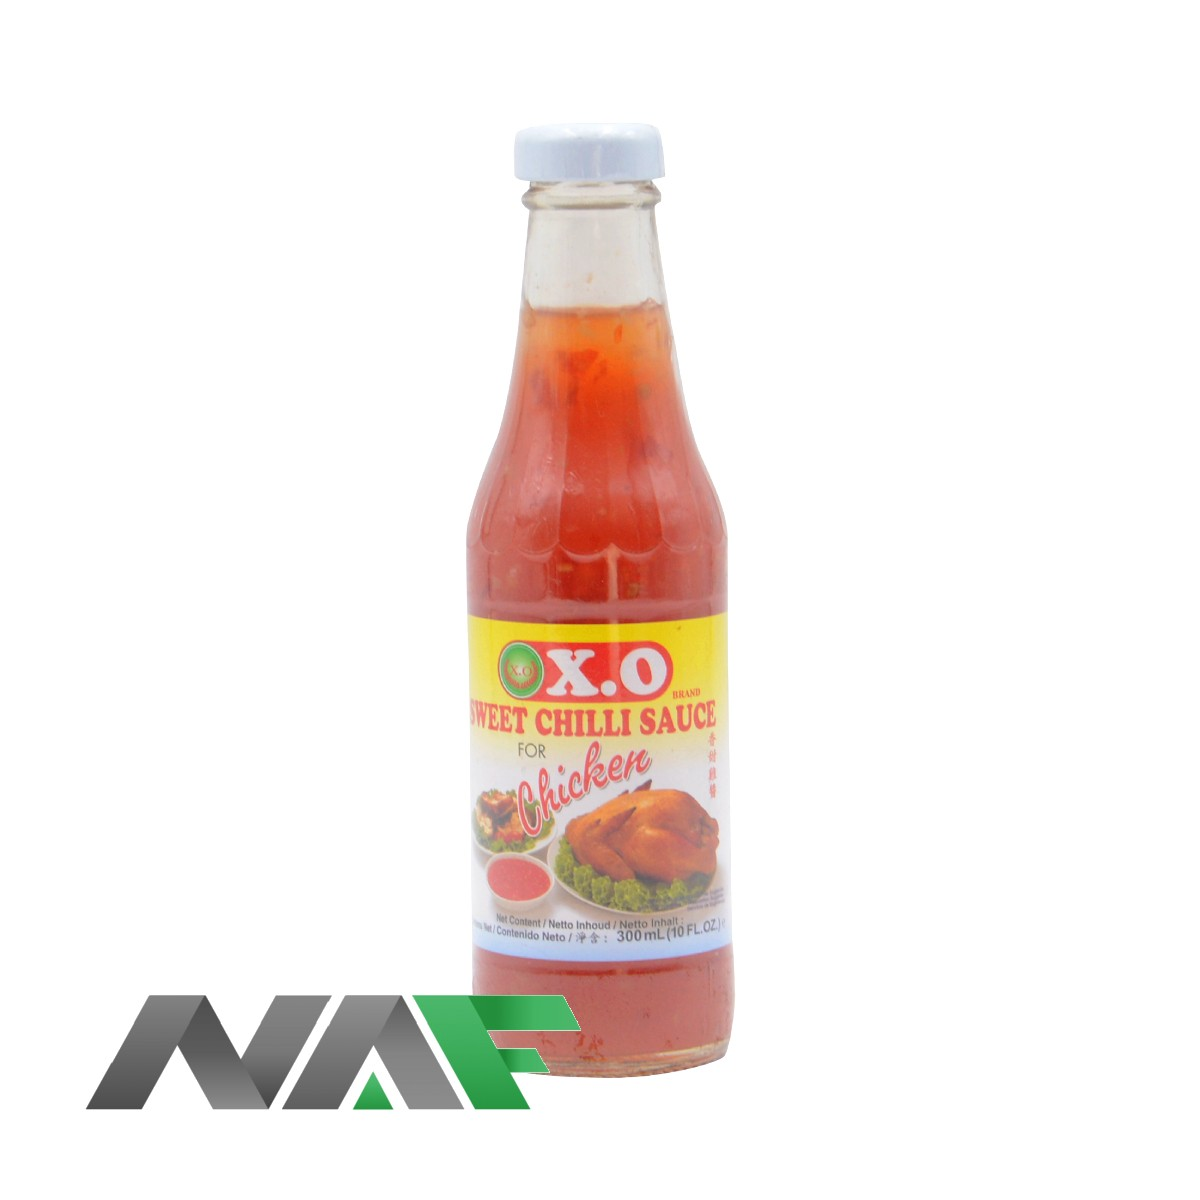 Sweet Chili Sauce X O 300ml